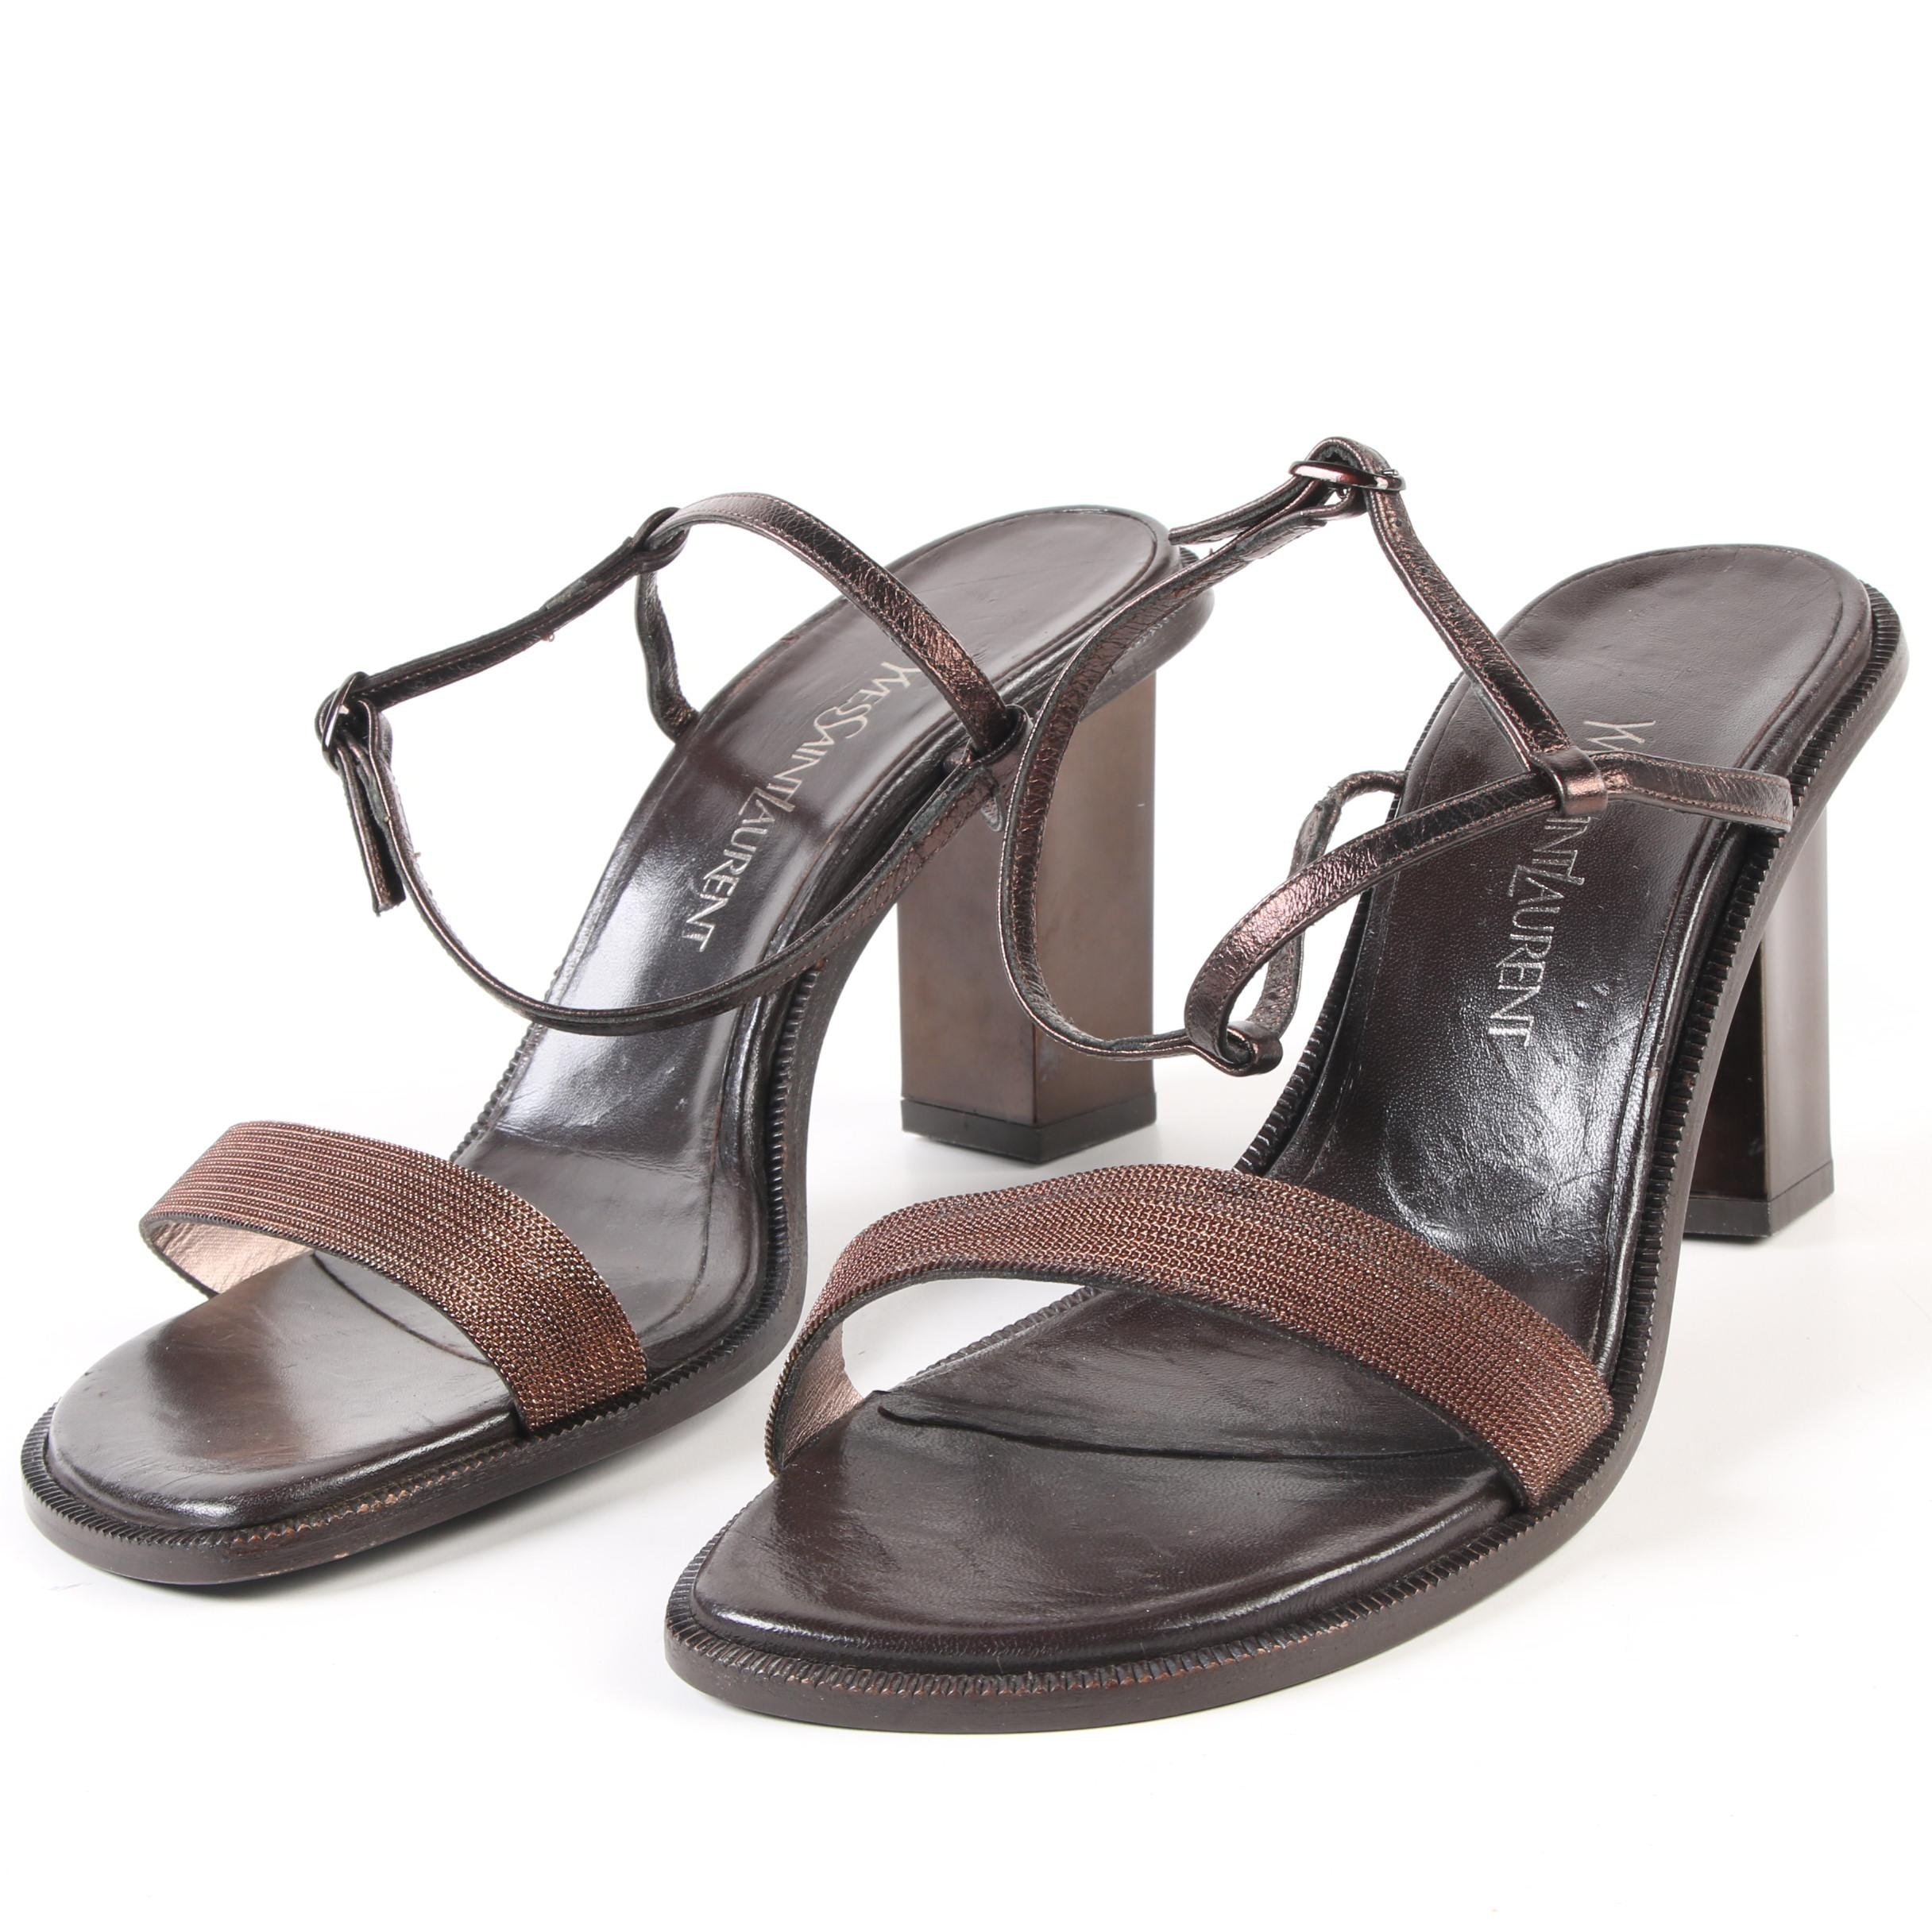 Yves Saint Laurent Brown Leather and Bronze Chain High Heel Ankle Strap Sandals